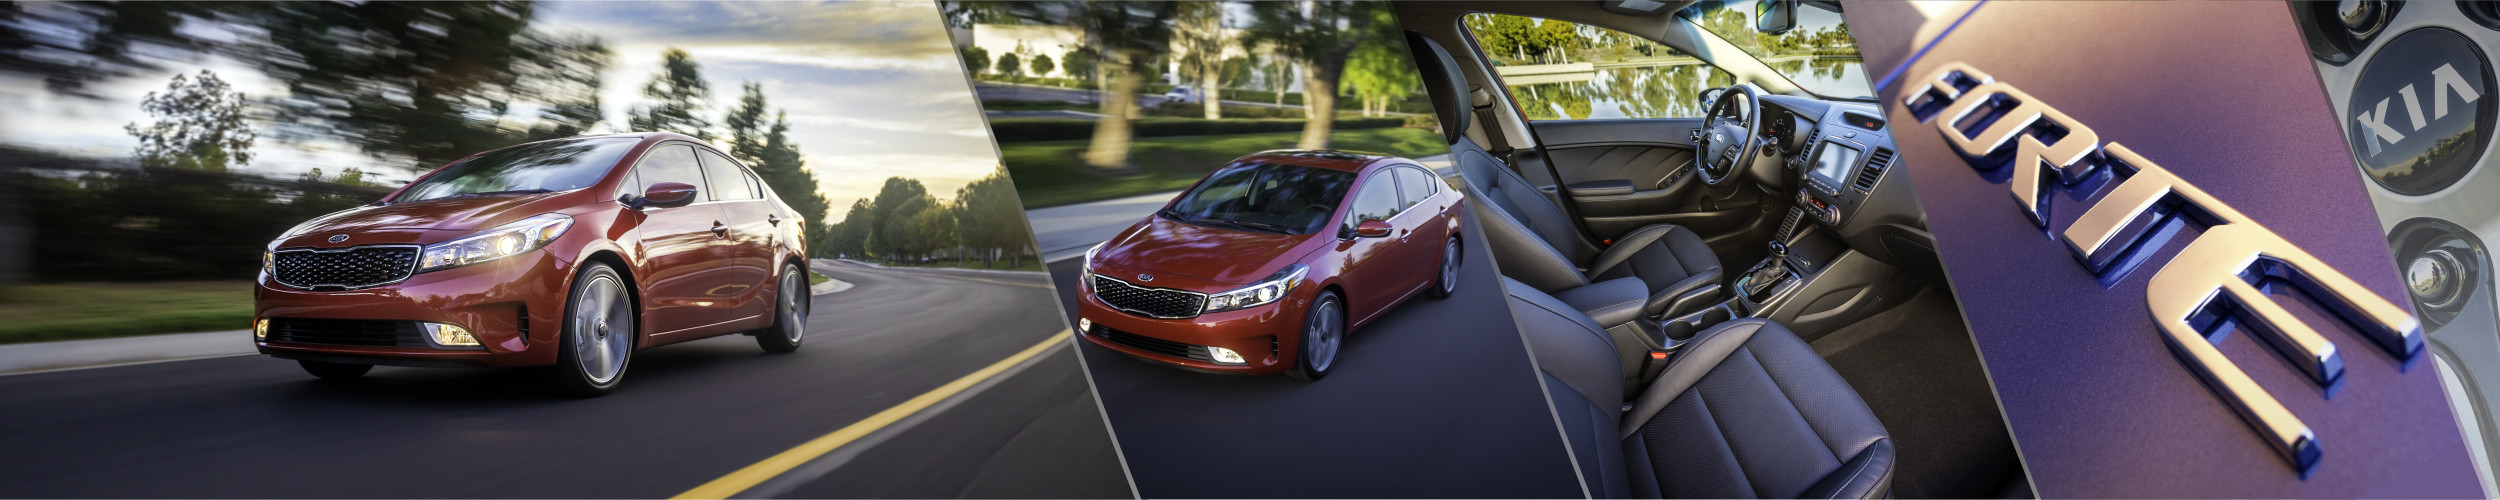 2017 Optima Dealer In San Antonio Tx >> Kia Forte | San Antonio TX